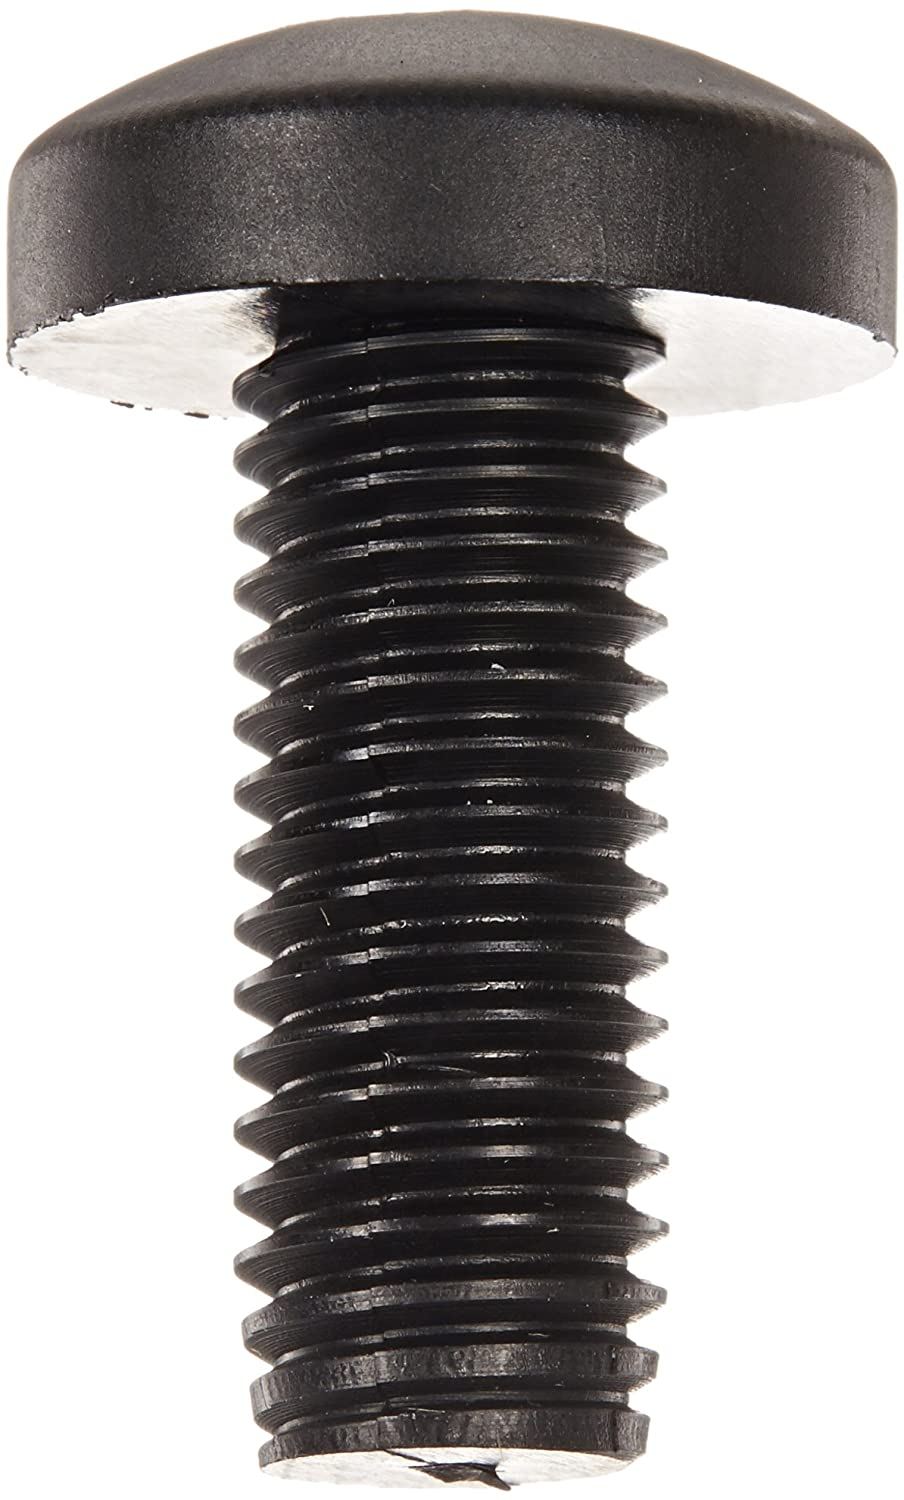 Fully Threaded M10-1.5 Thread Size #4 Phillips Drive 25 mm Length USA Made Black Pack of 50 Nylon 6//6 Pan Head Machine Screw